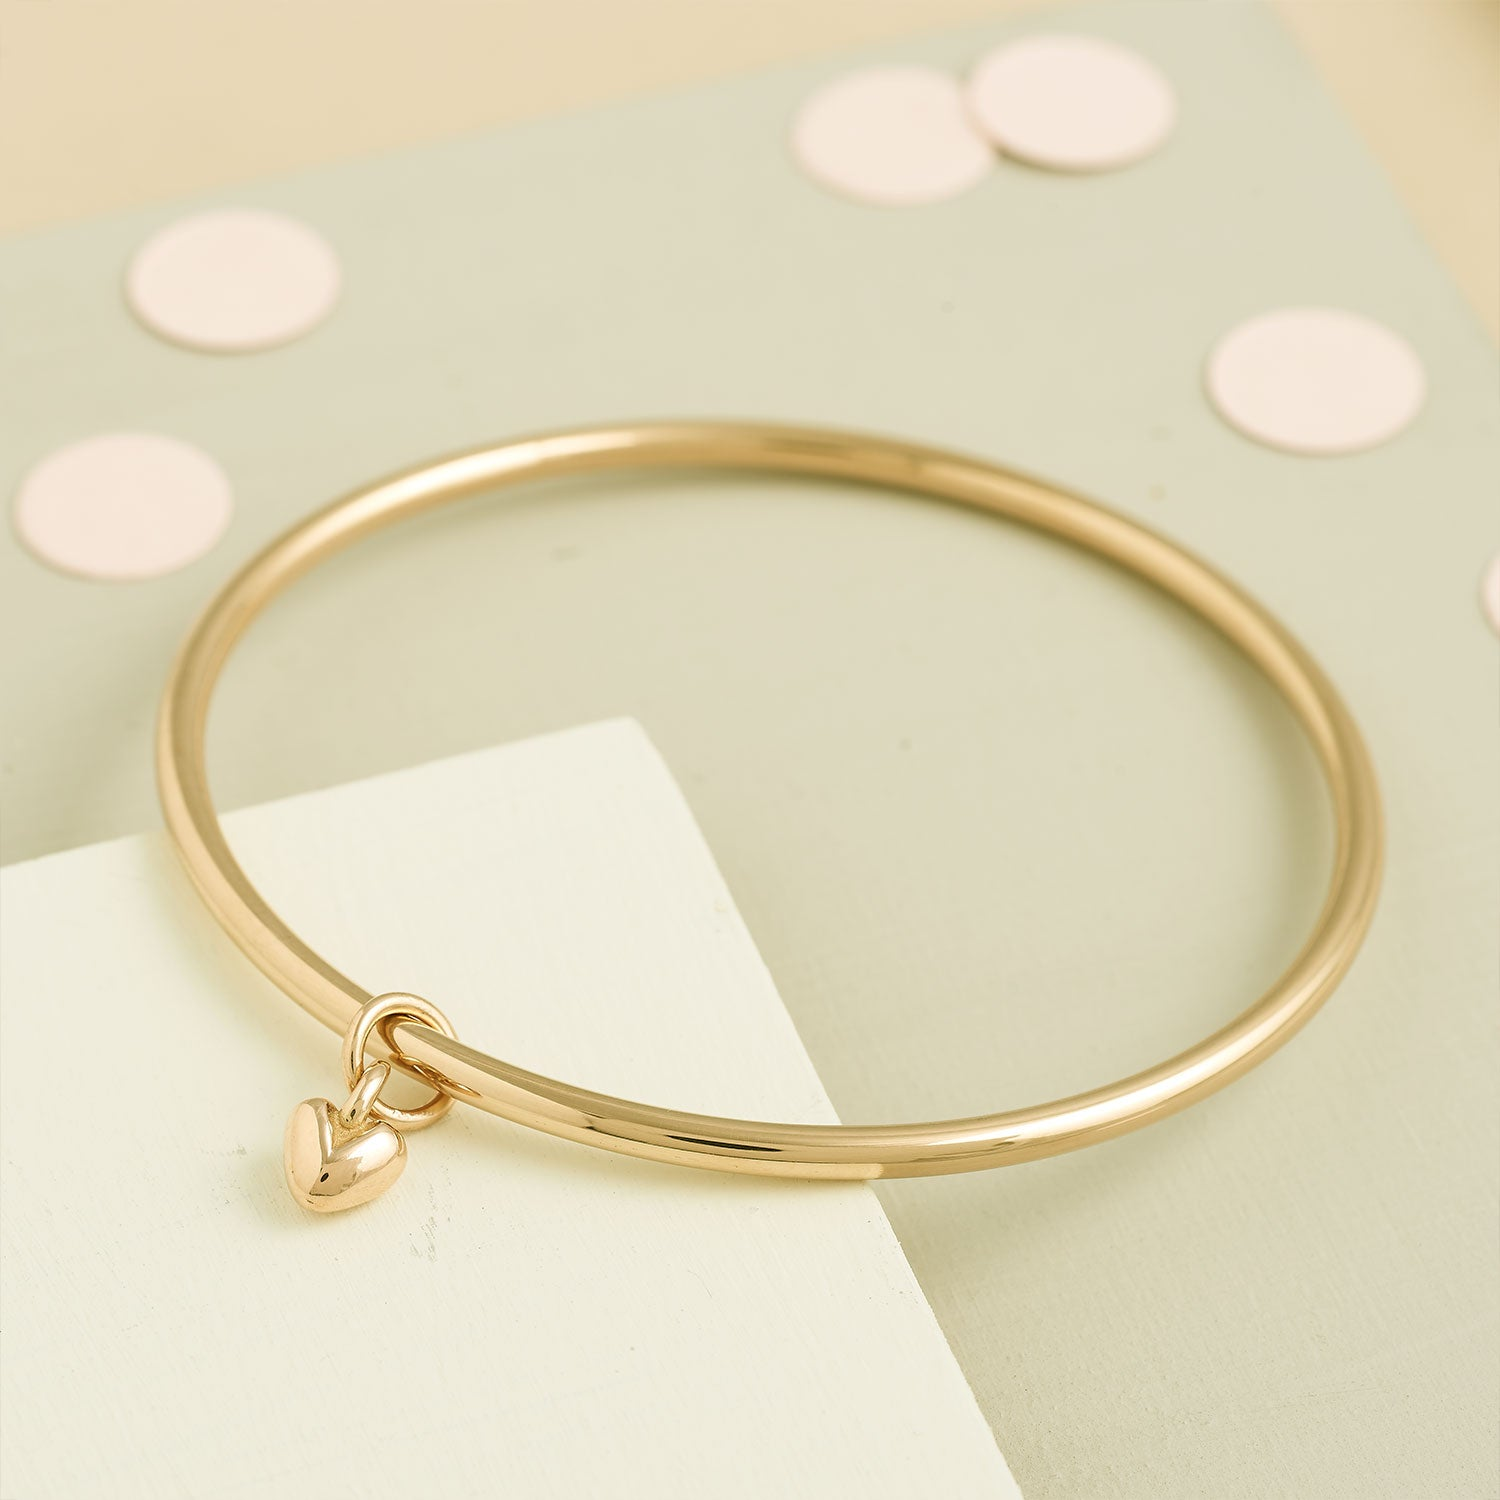 solid 9 carat gold heart bangle for women Scarlett Jewellery